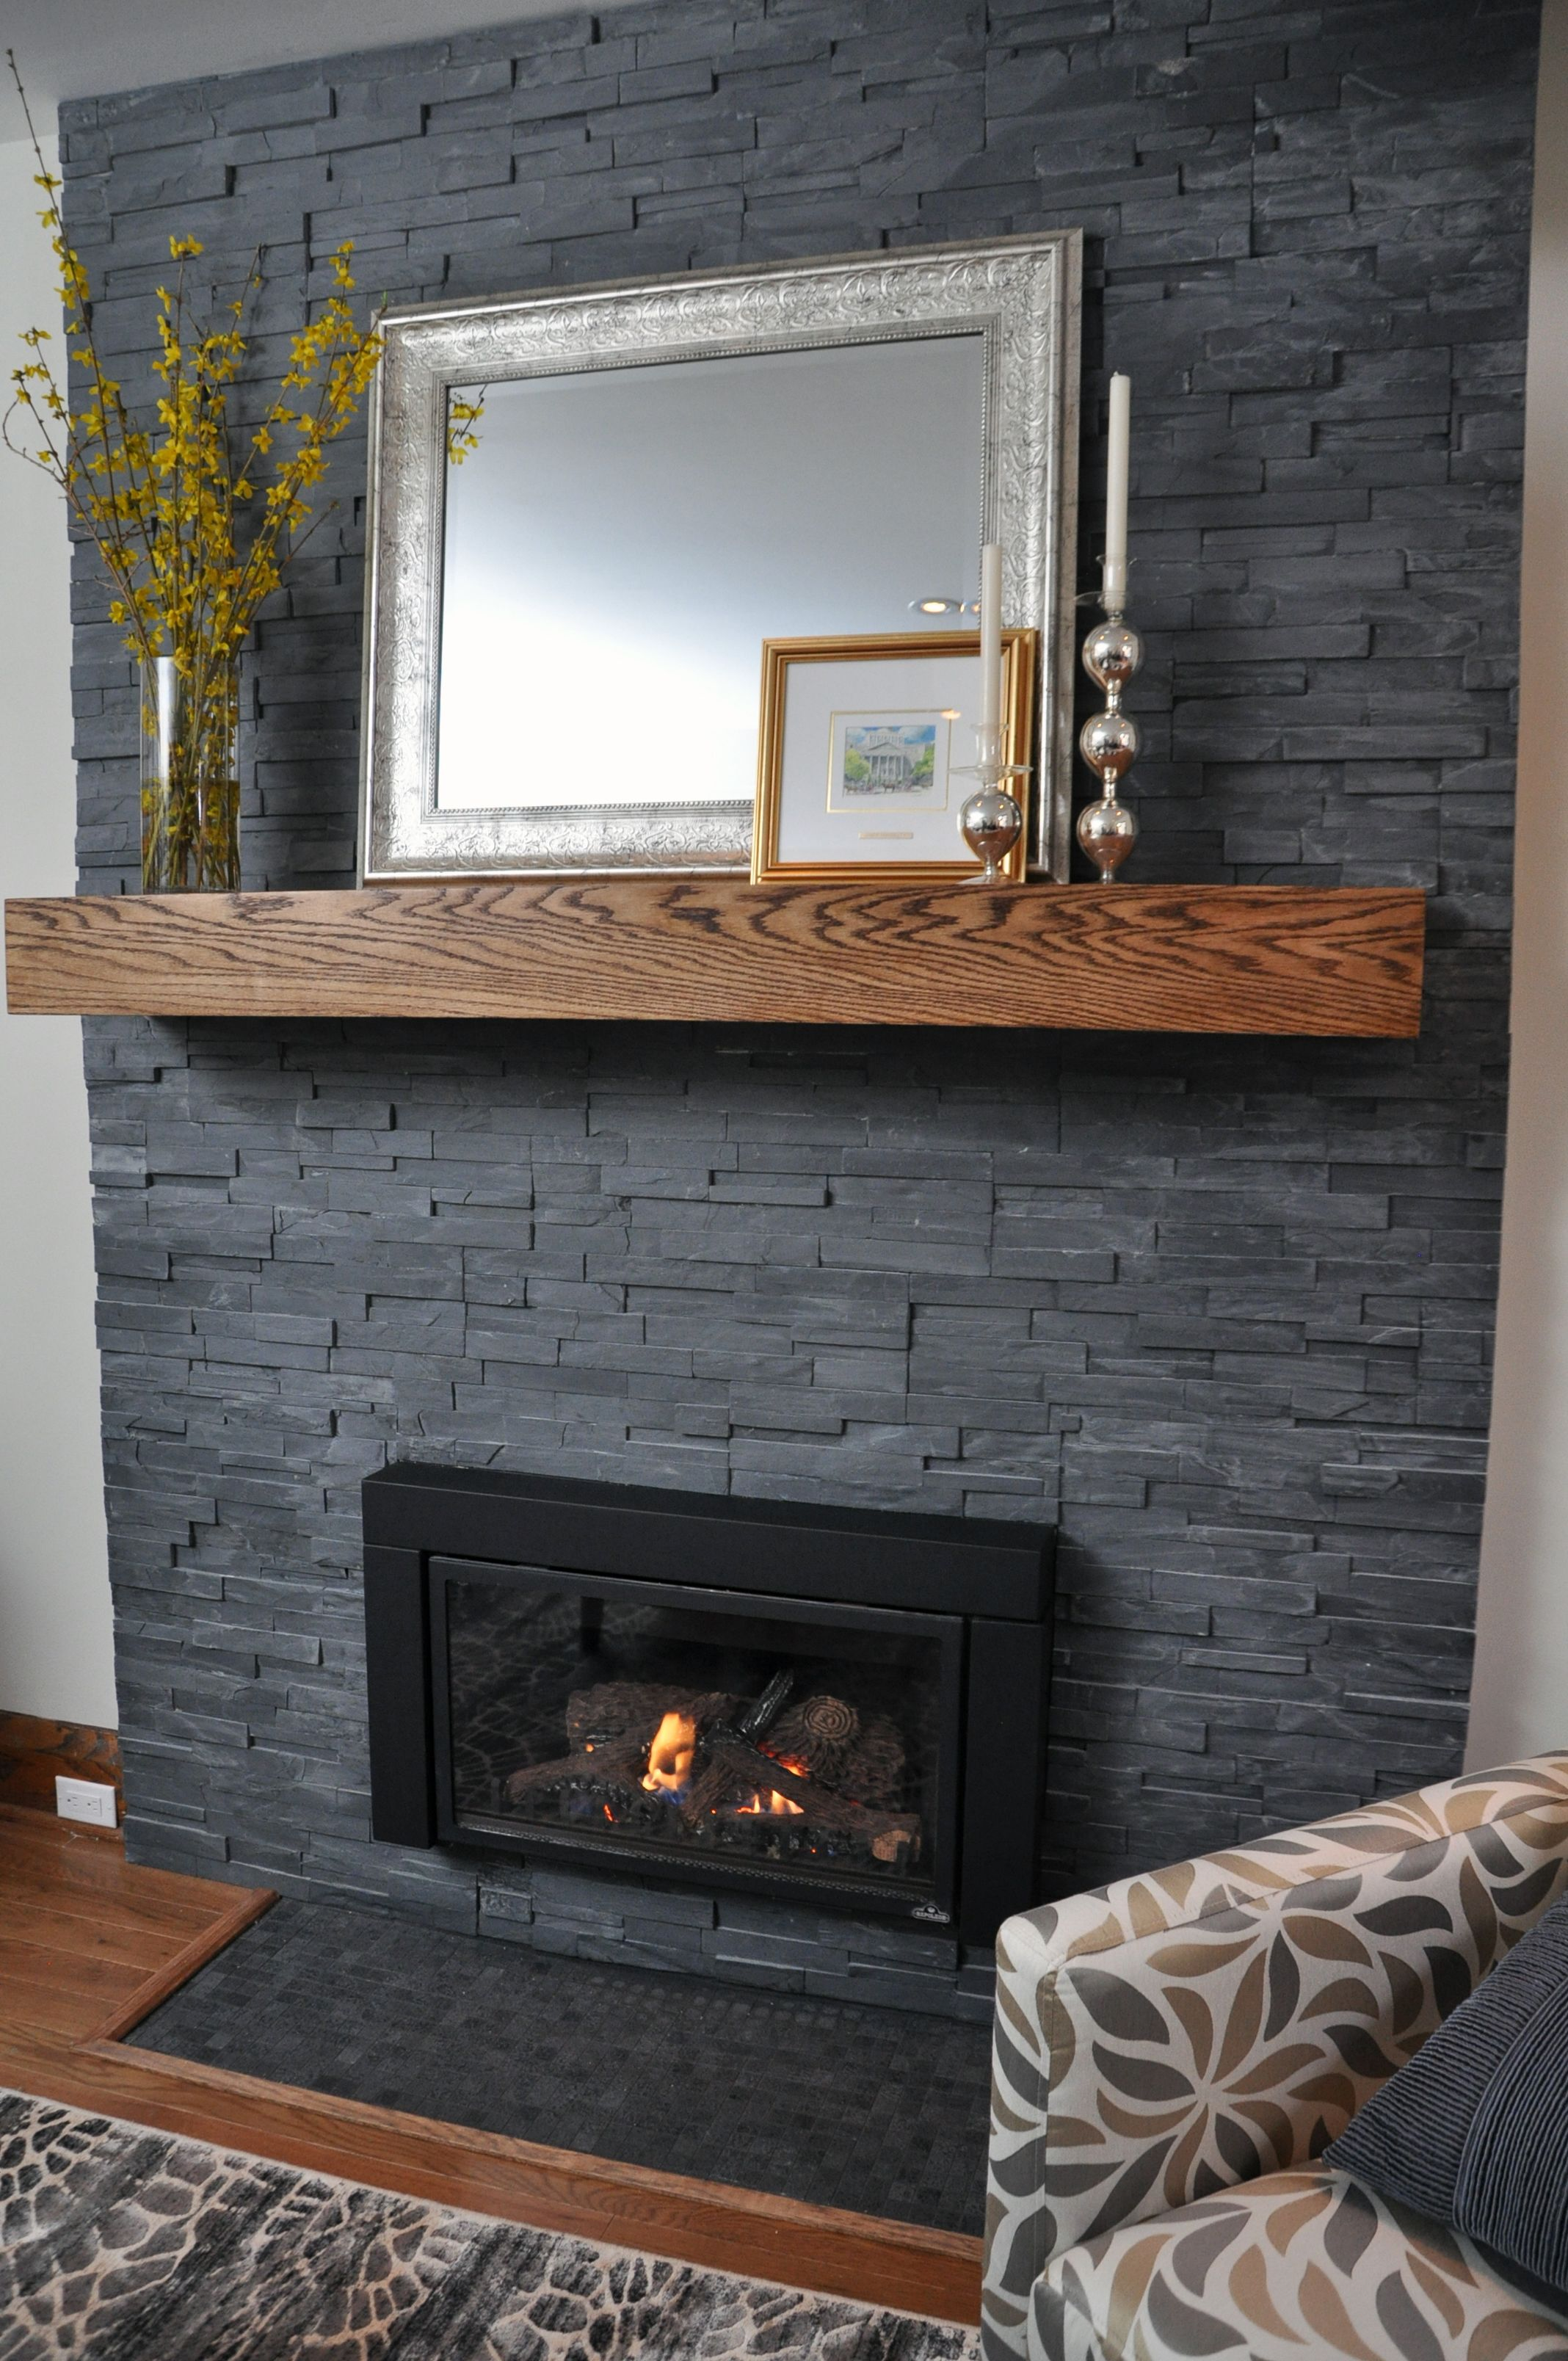 a gas glass stack rustic with big iron white wooden awesome mantel polished frame small mantels decoration for modern living arts art brown some surround tile through mahogany design crafts accessories fireplace dark black room wood and ceramic see